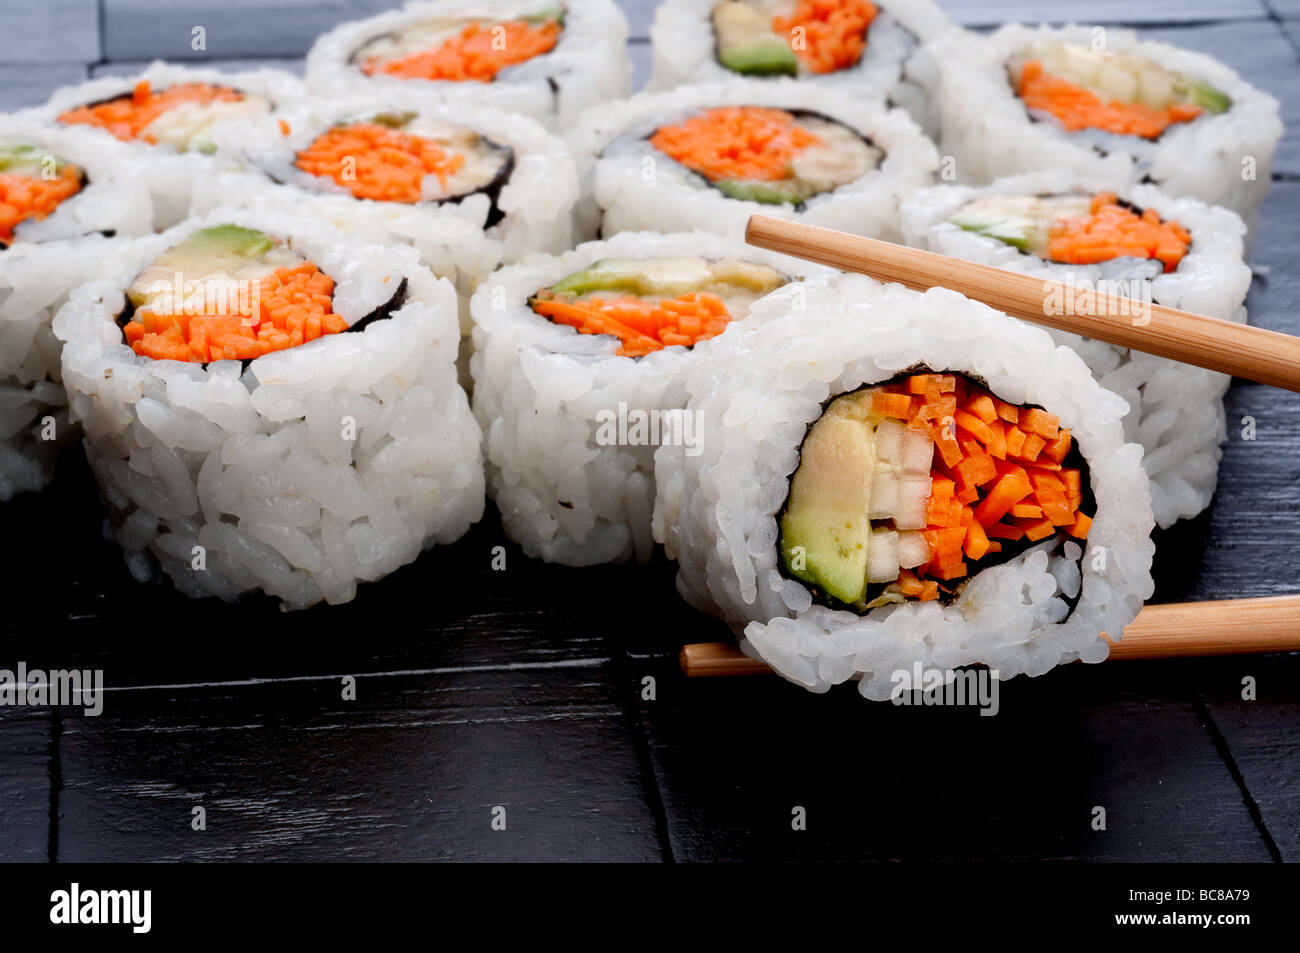 chopsticks holding sushi infront of more sushi on a black textured background - Stock Image